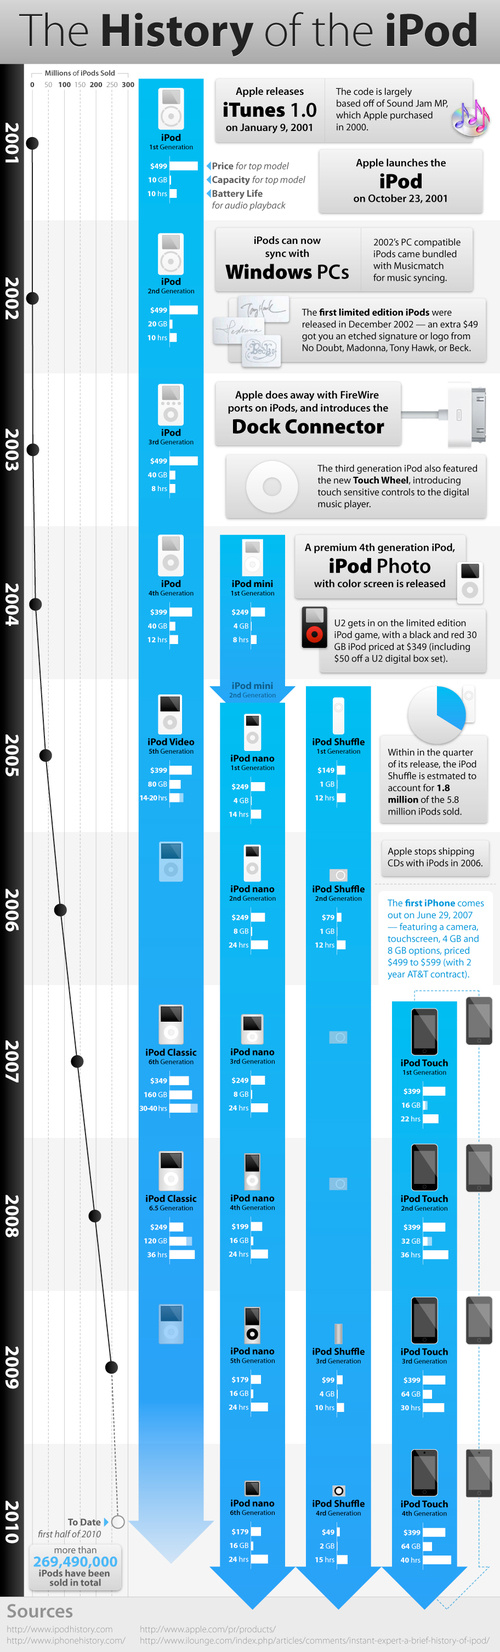 Thumb Infografa de la Historia del iPod